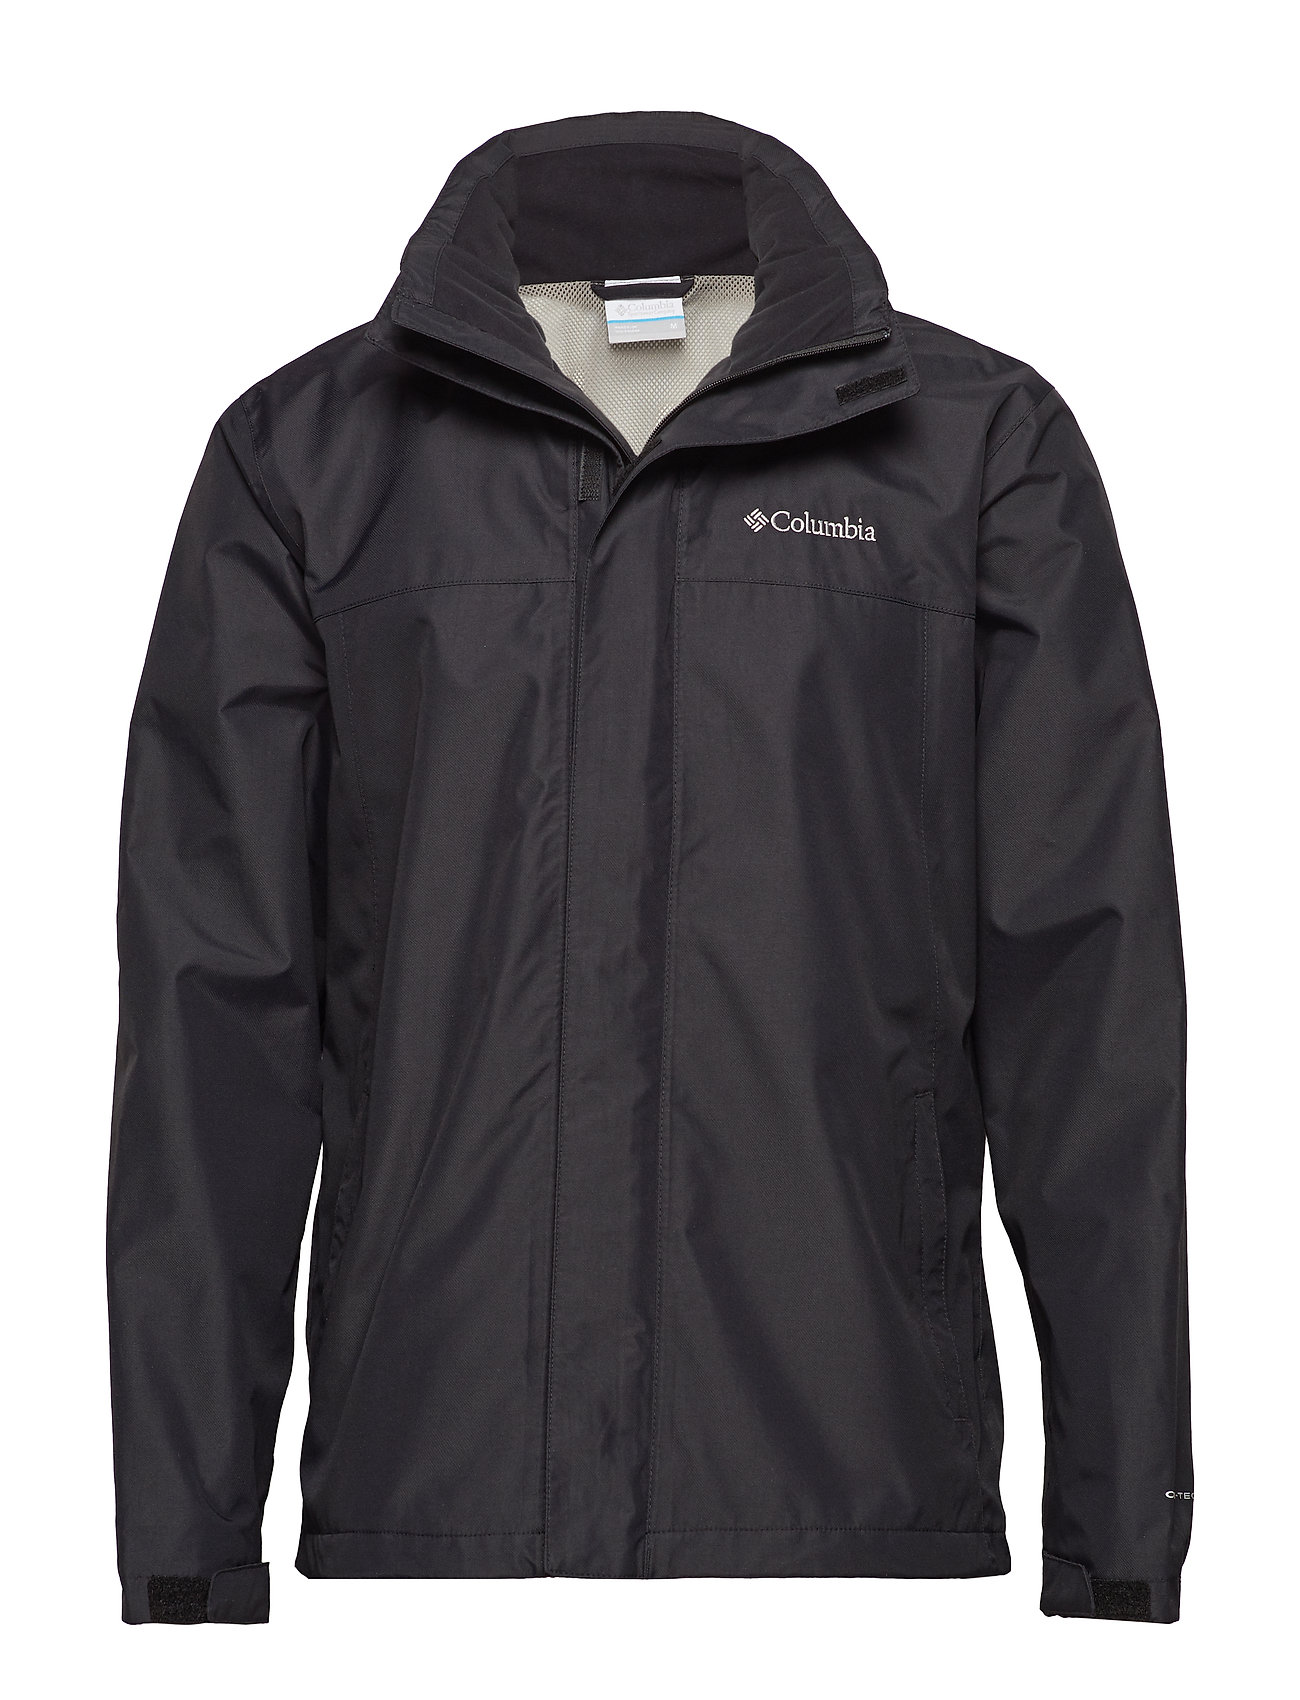 21e532fc161 Timothy Lake™ Jacket (Black) (899 kr) - Columbia - | Boozt.com